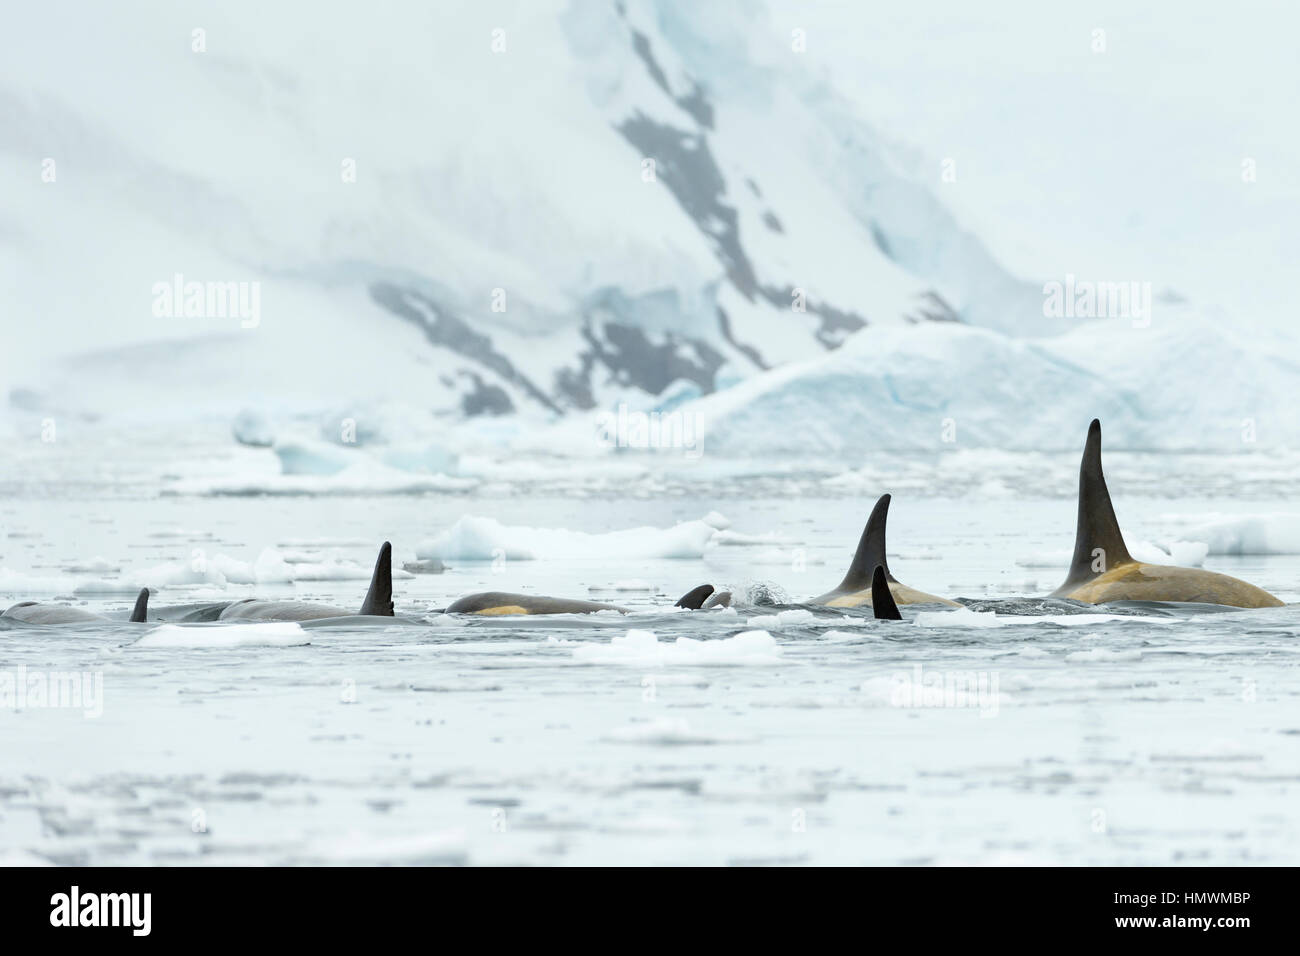 Killer Whale Orcinus orca, pod, swimming amongst ice floes, Neko Harbour, Antarctica in January. - Stock Image